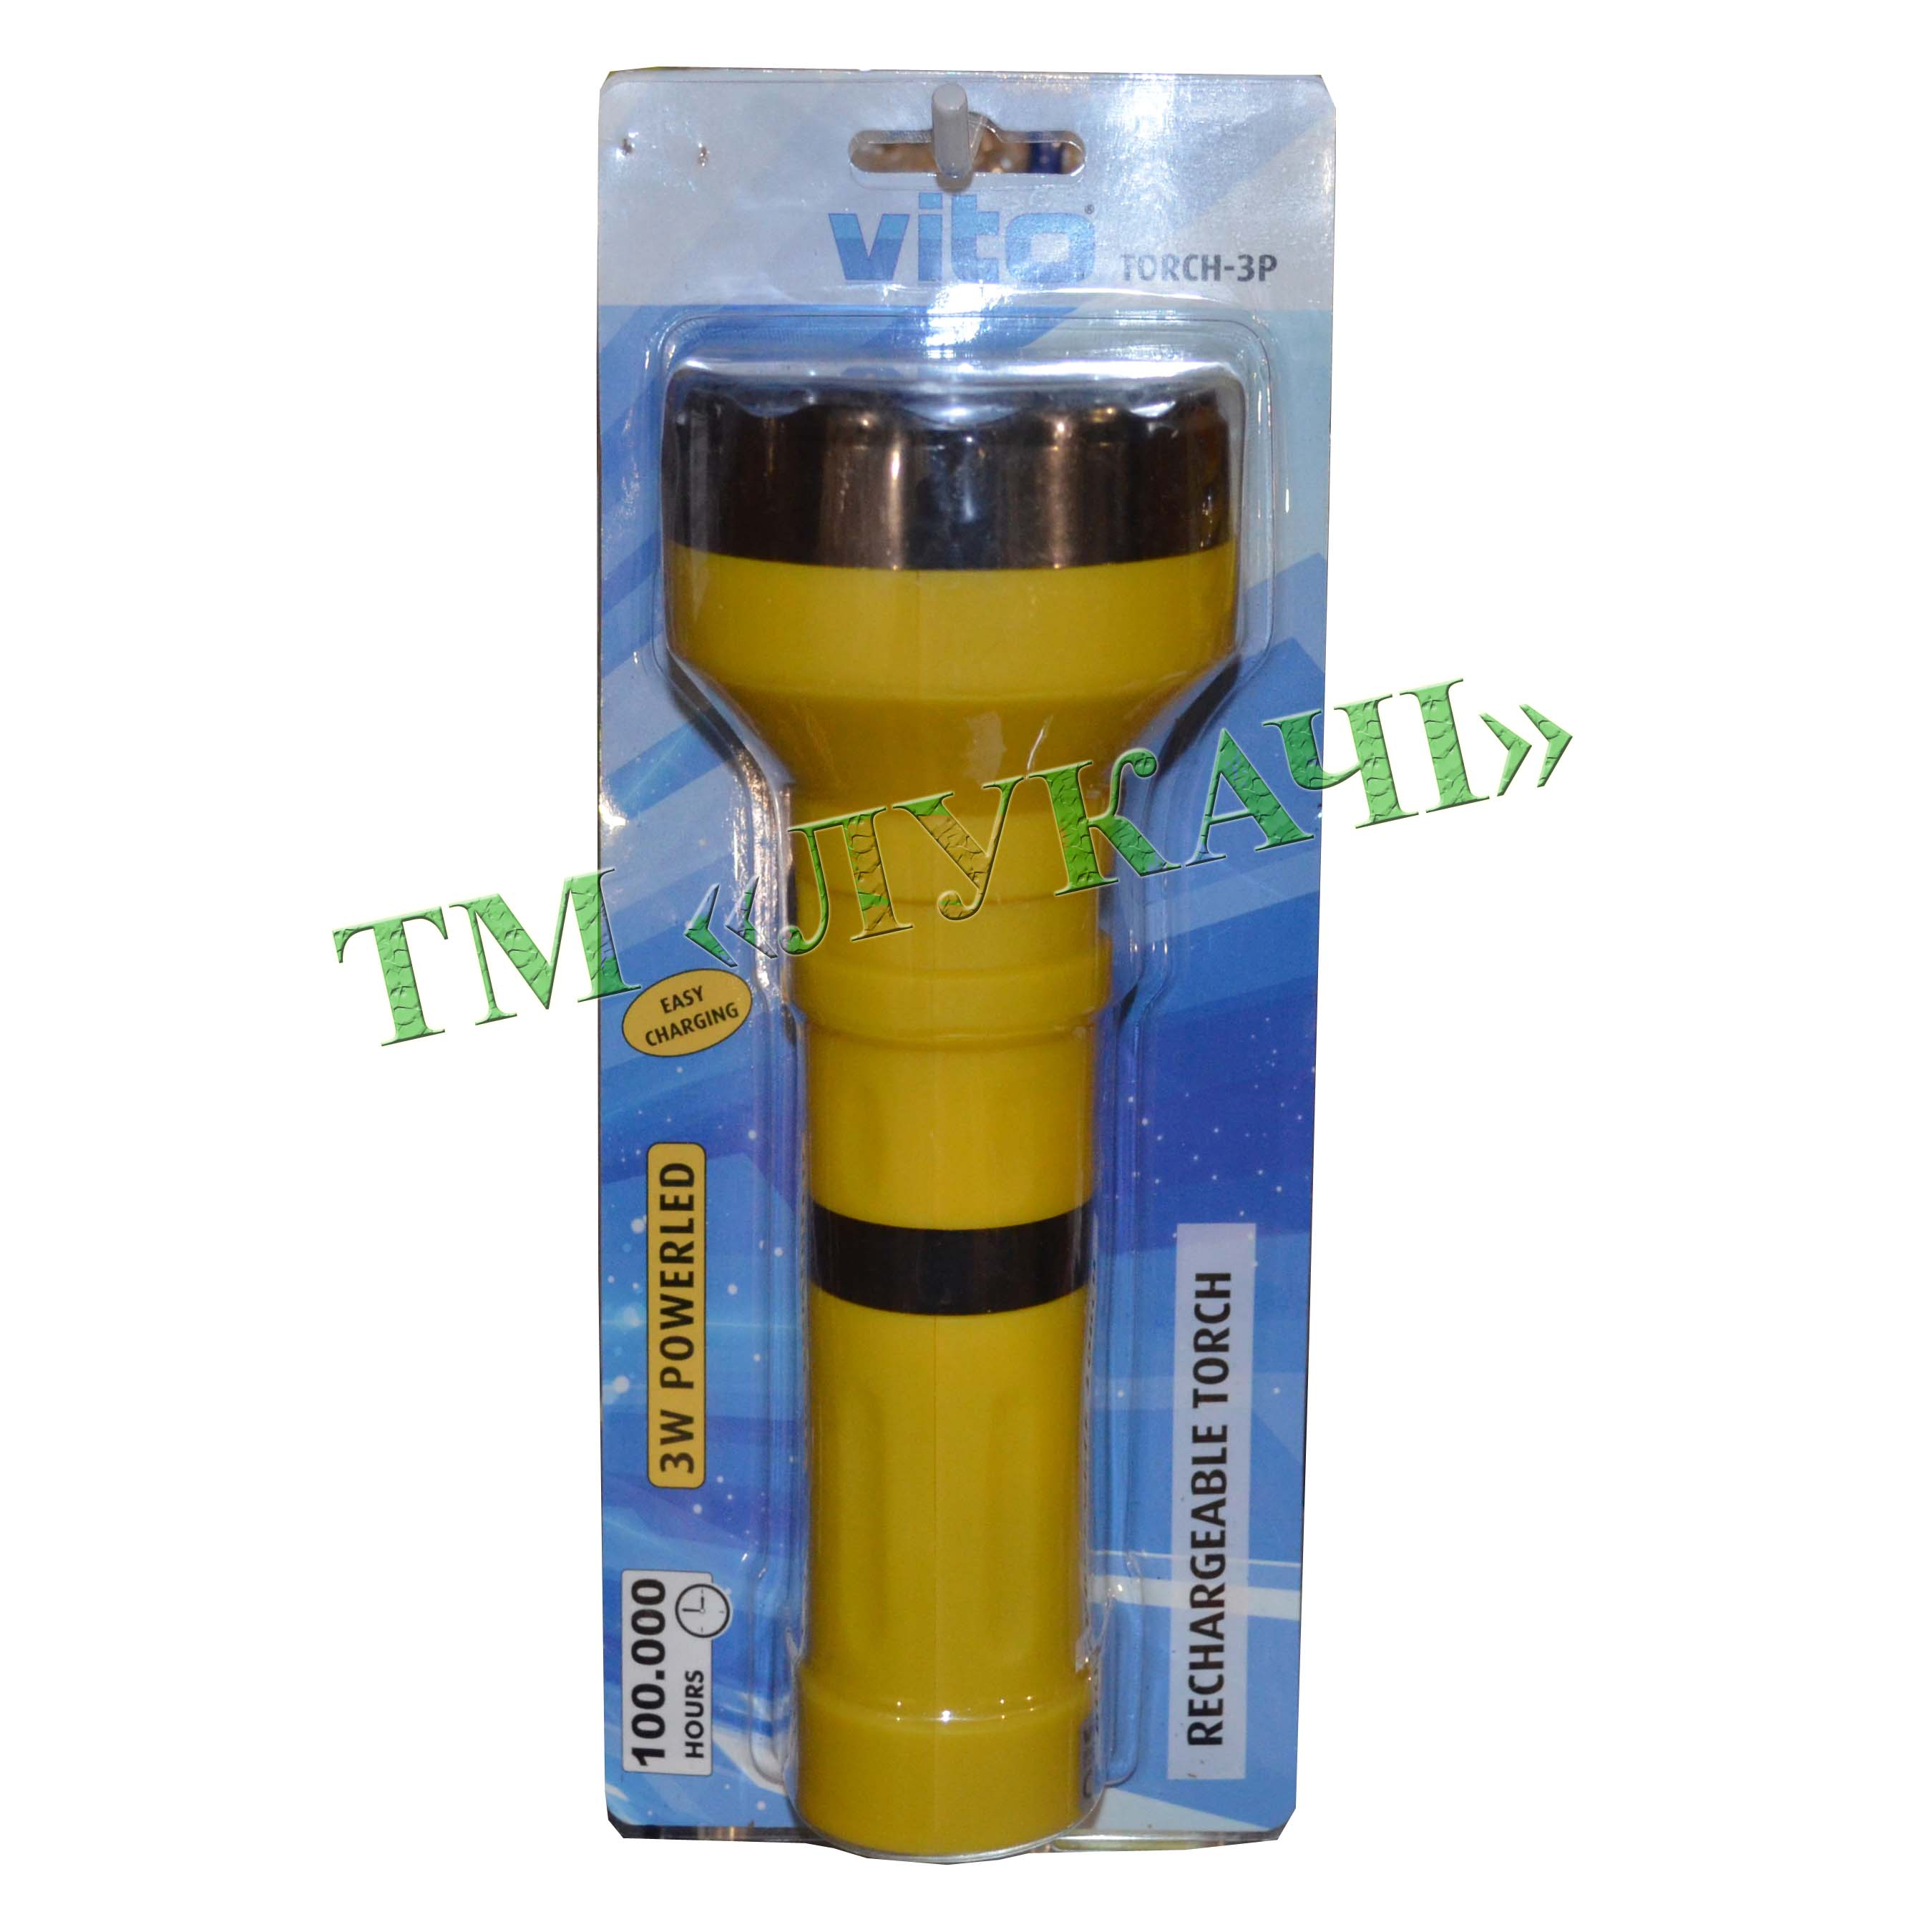 Фонар VITO Torch-3P 3 PowerLed 4V 900mAh 120Lm 1-4год.5000300